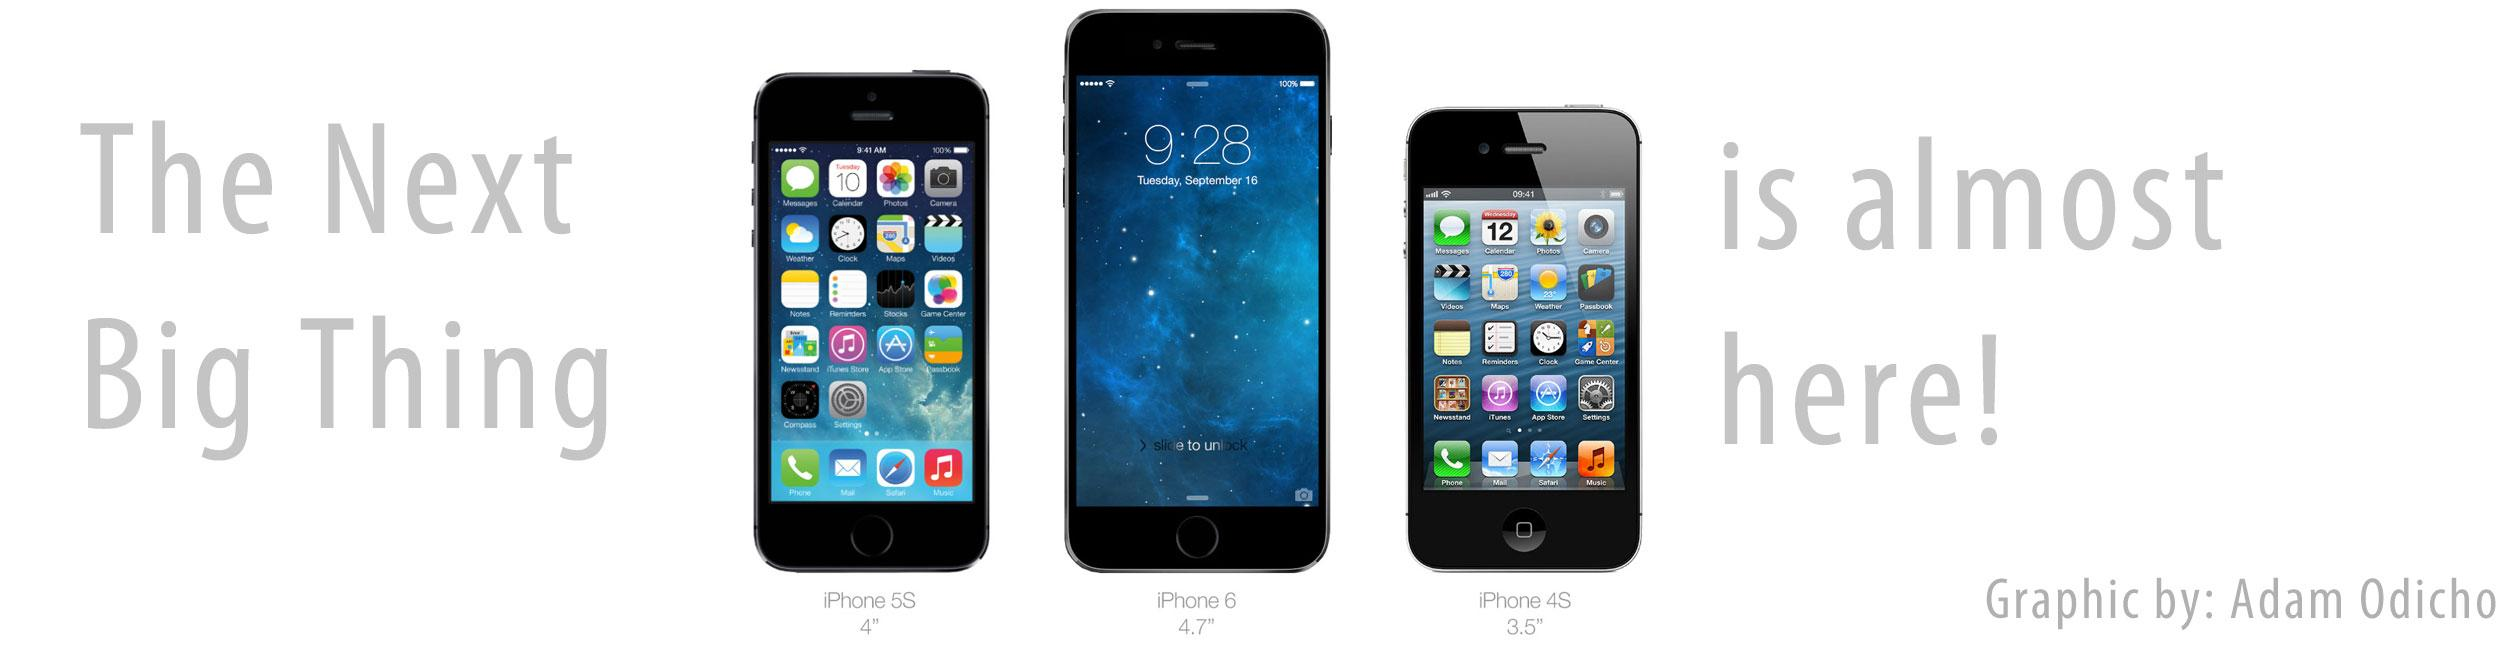 iPhone 6: Bigger, faster, stronger